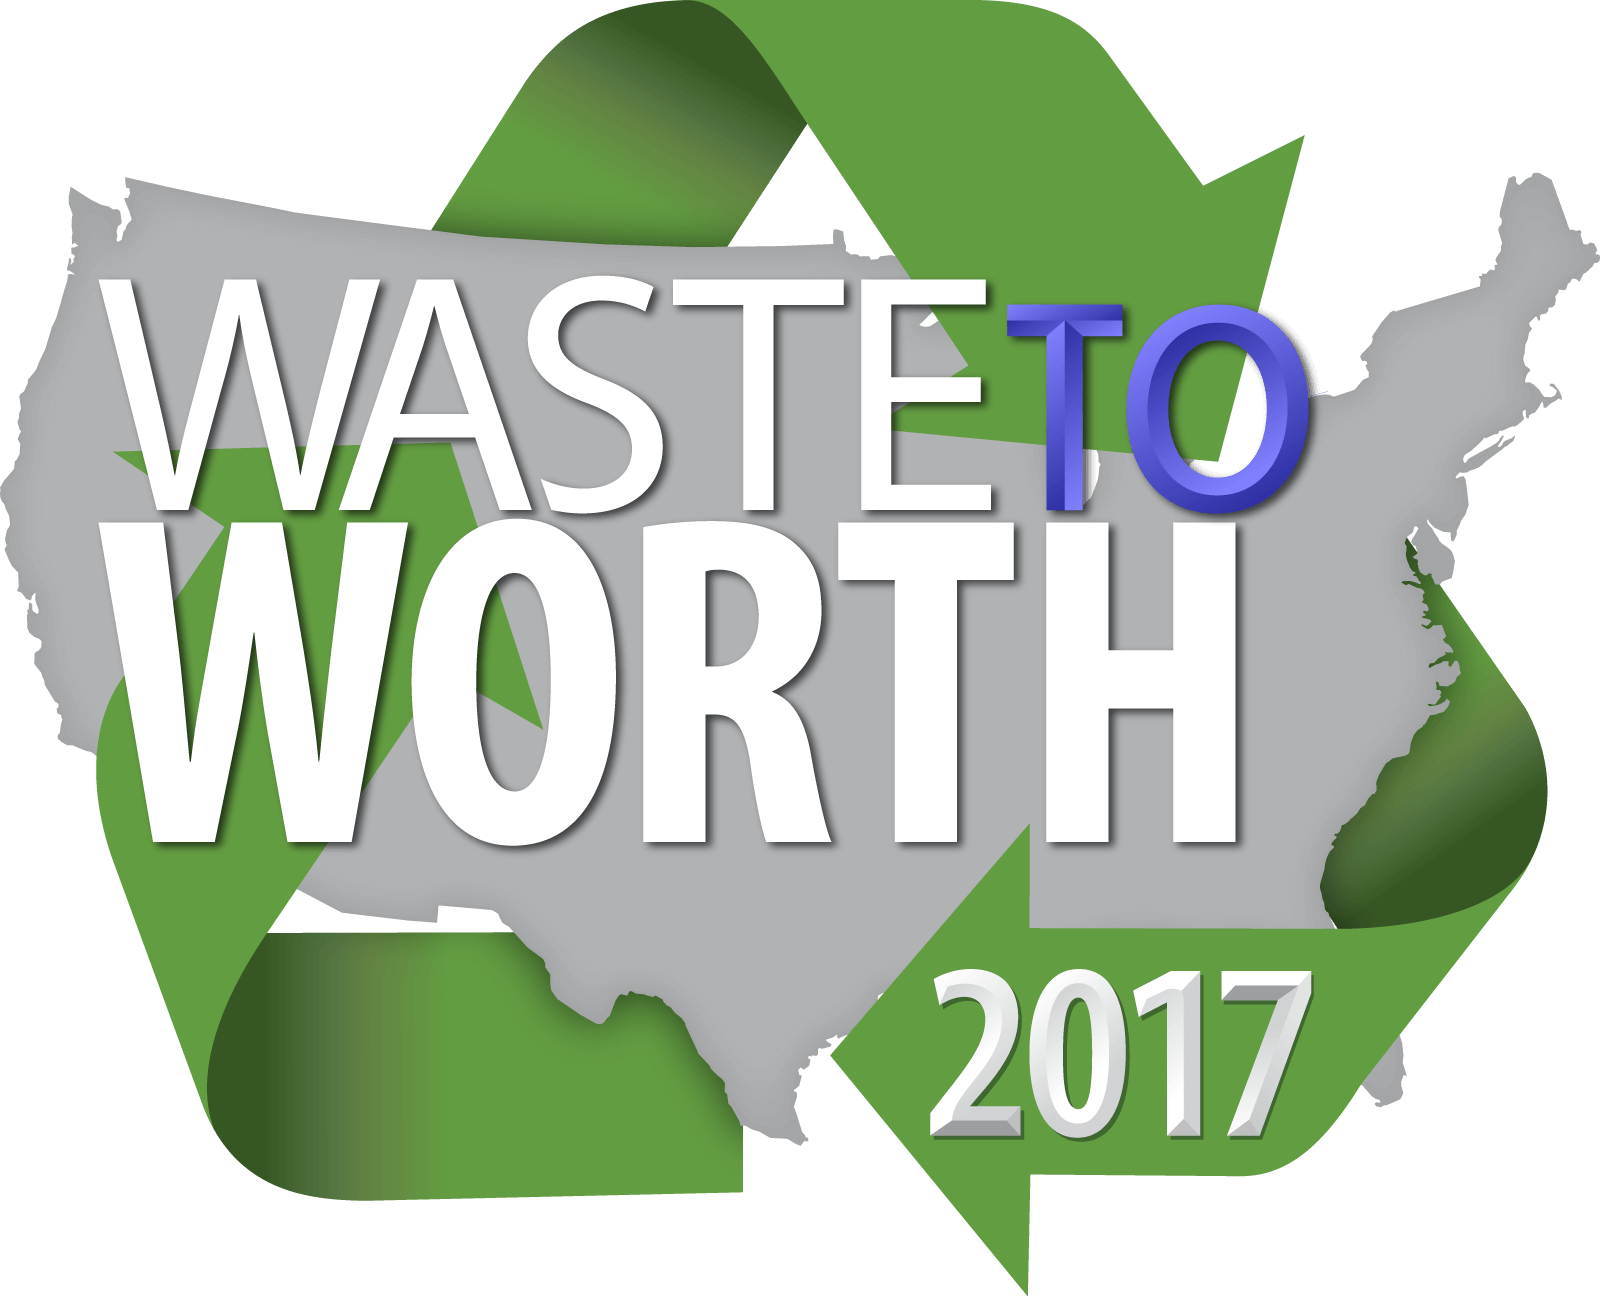 Farm clipart industrial waste In Worth: 2017 of Line